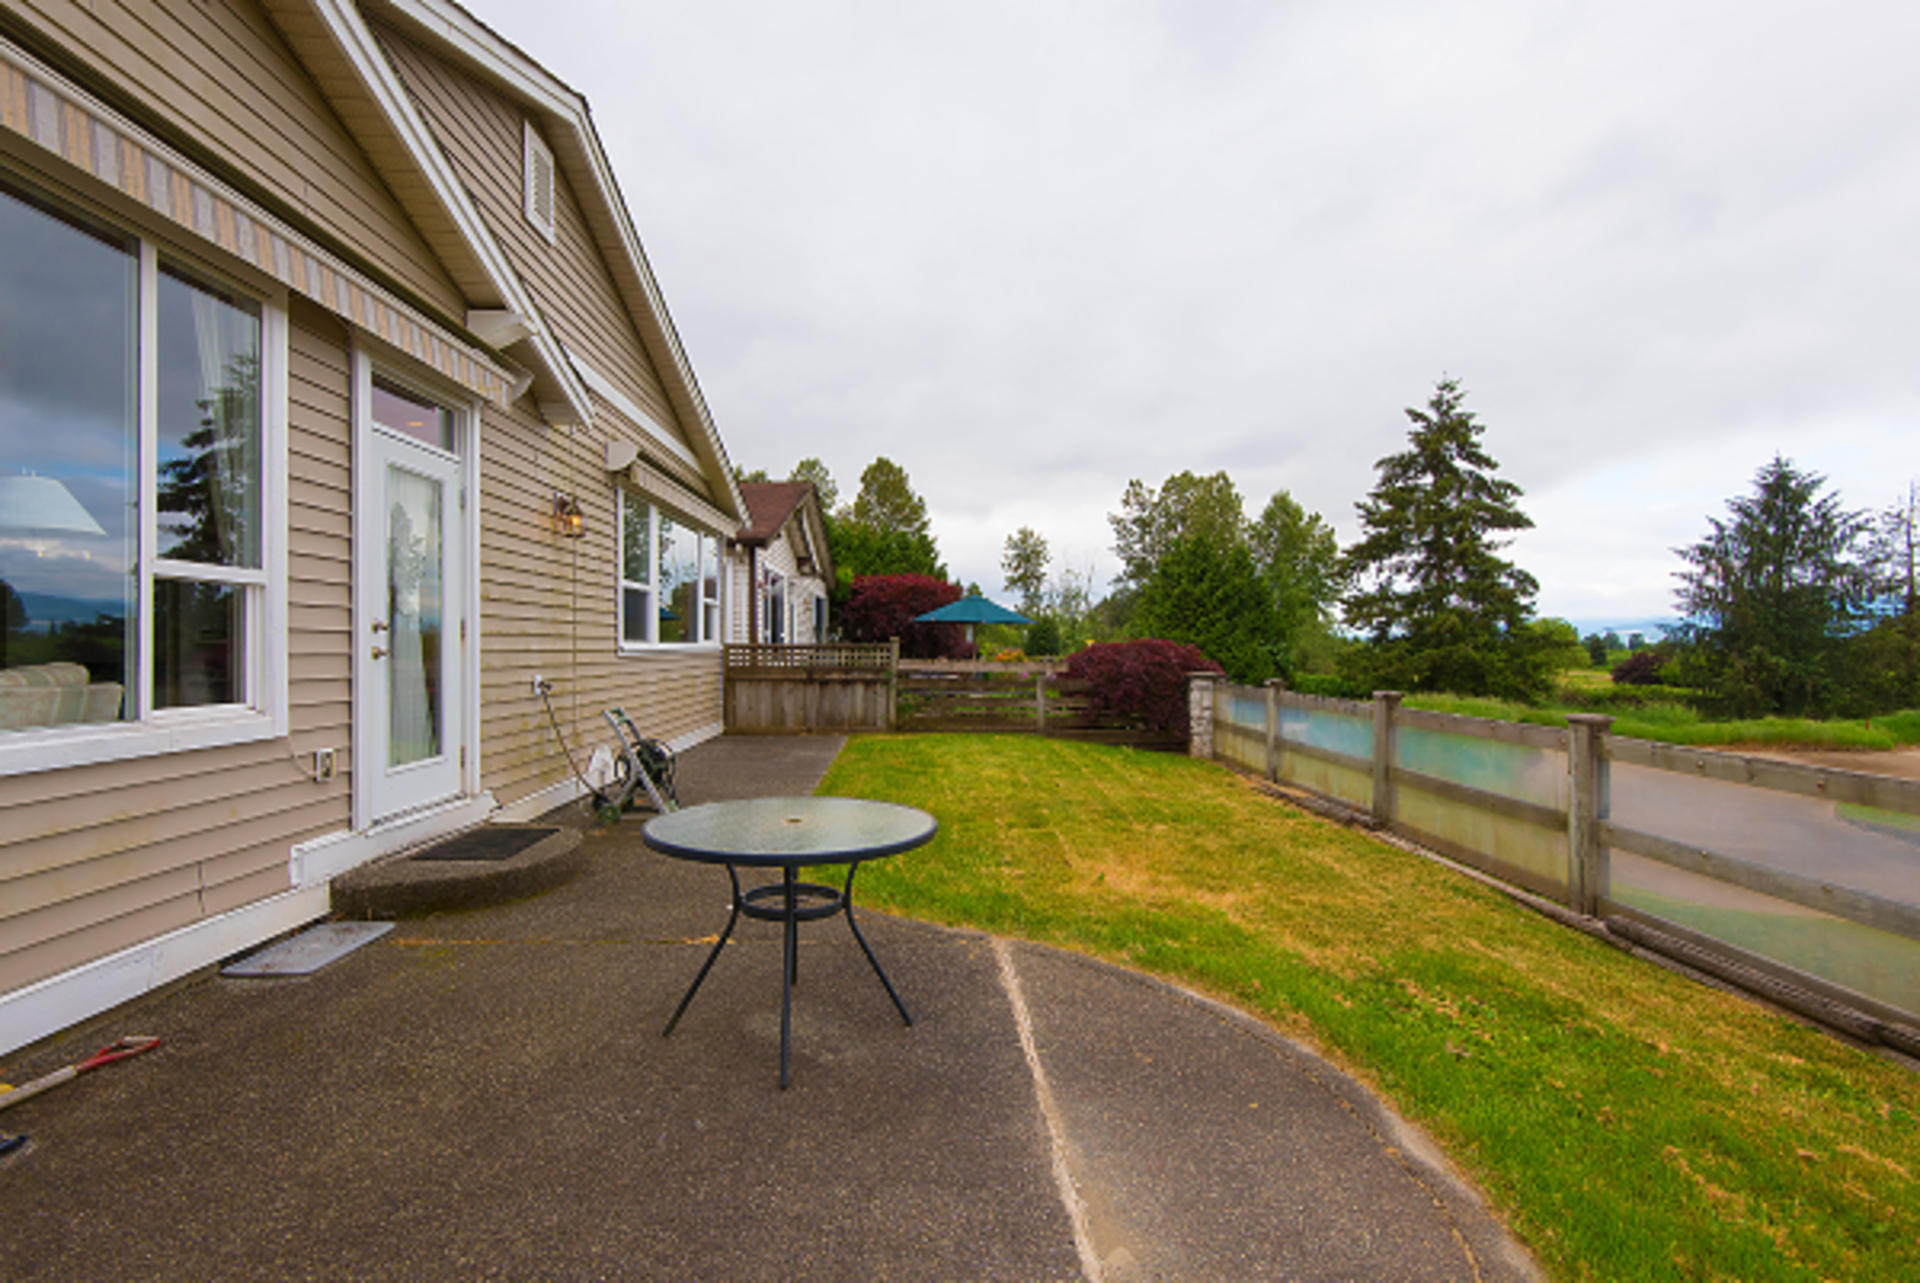 023 at 131 - 19639 Meadow Gardens Way, North Meadows PI, Pitt Meadows